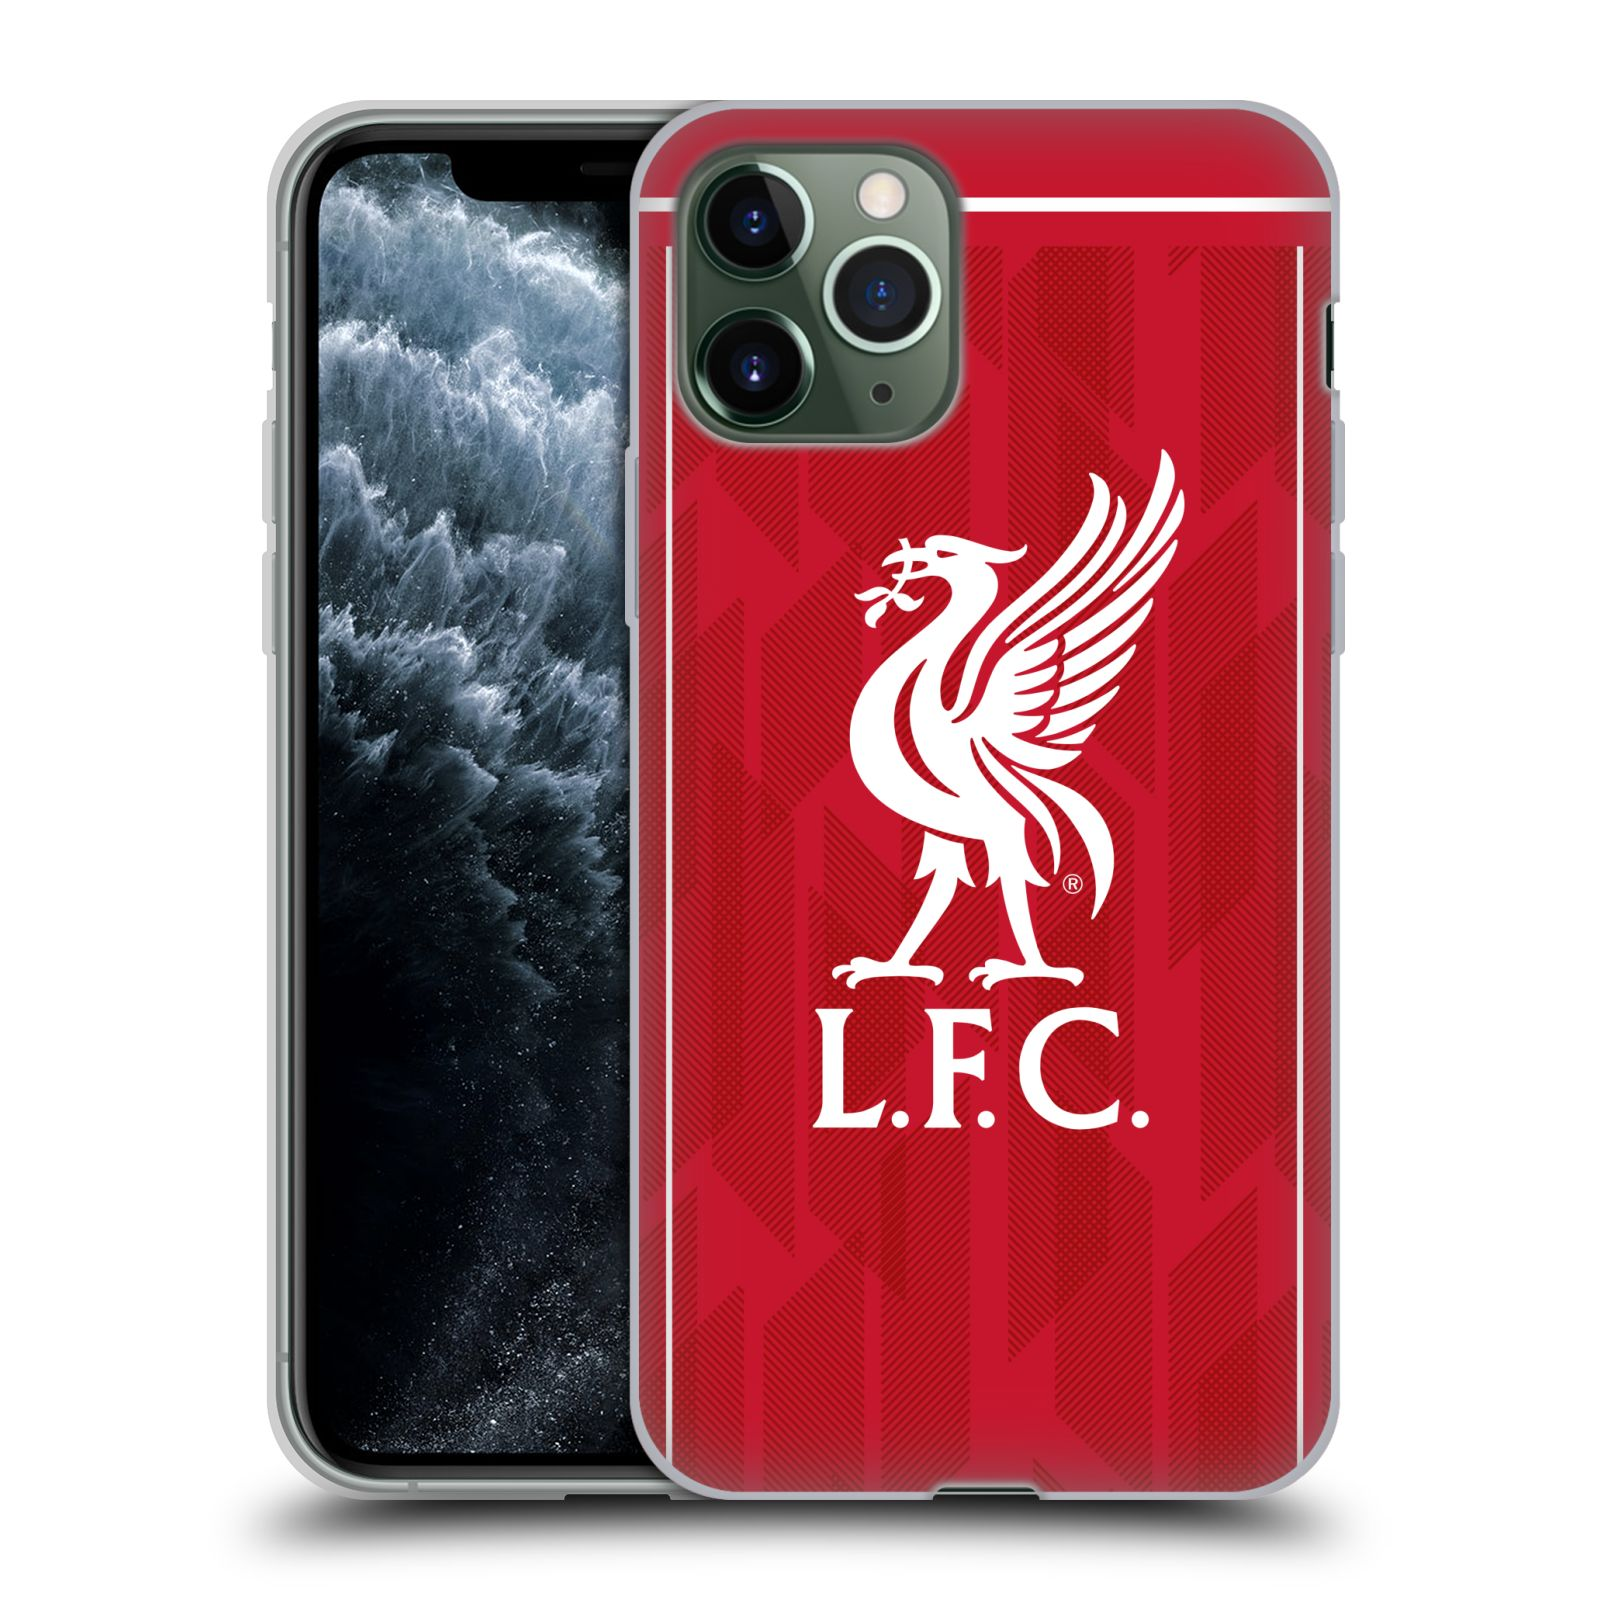 karl obaly iphone xs max | Silikonové pouzdro na mobil Apple iPhone 11 Pro - Head Case - Liverpool FC - L.F.C. Home kit